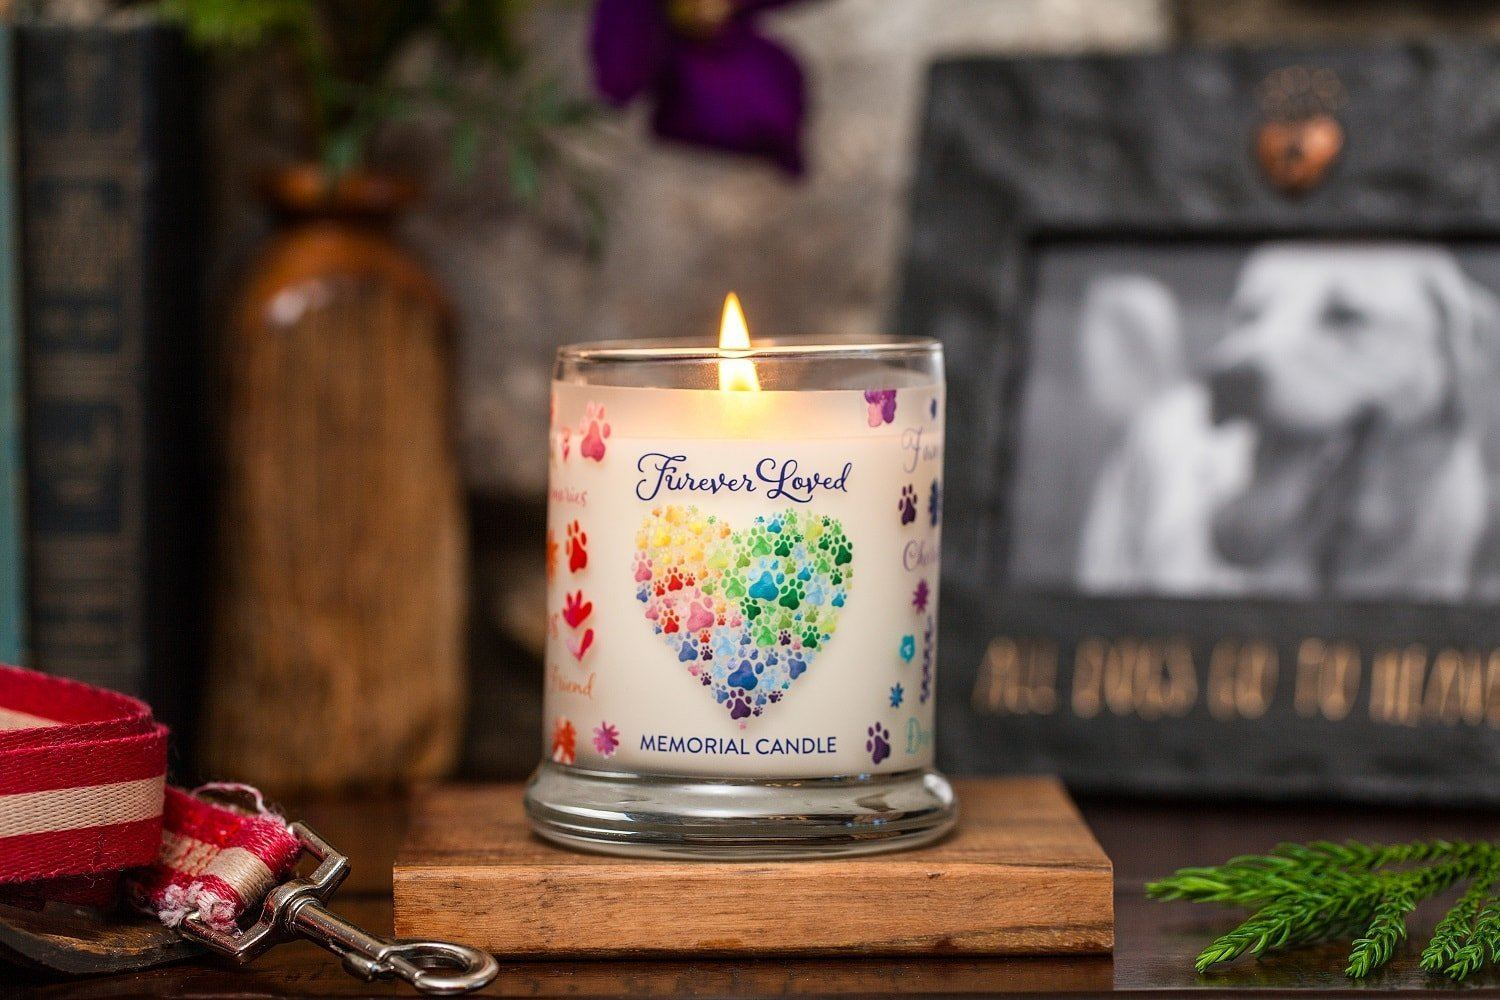 Pet House Candle Memorial